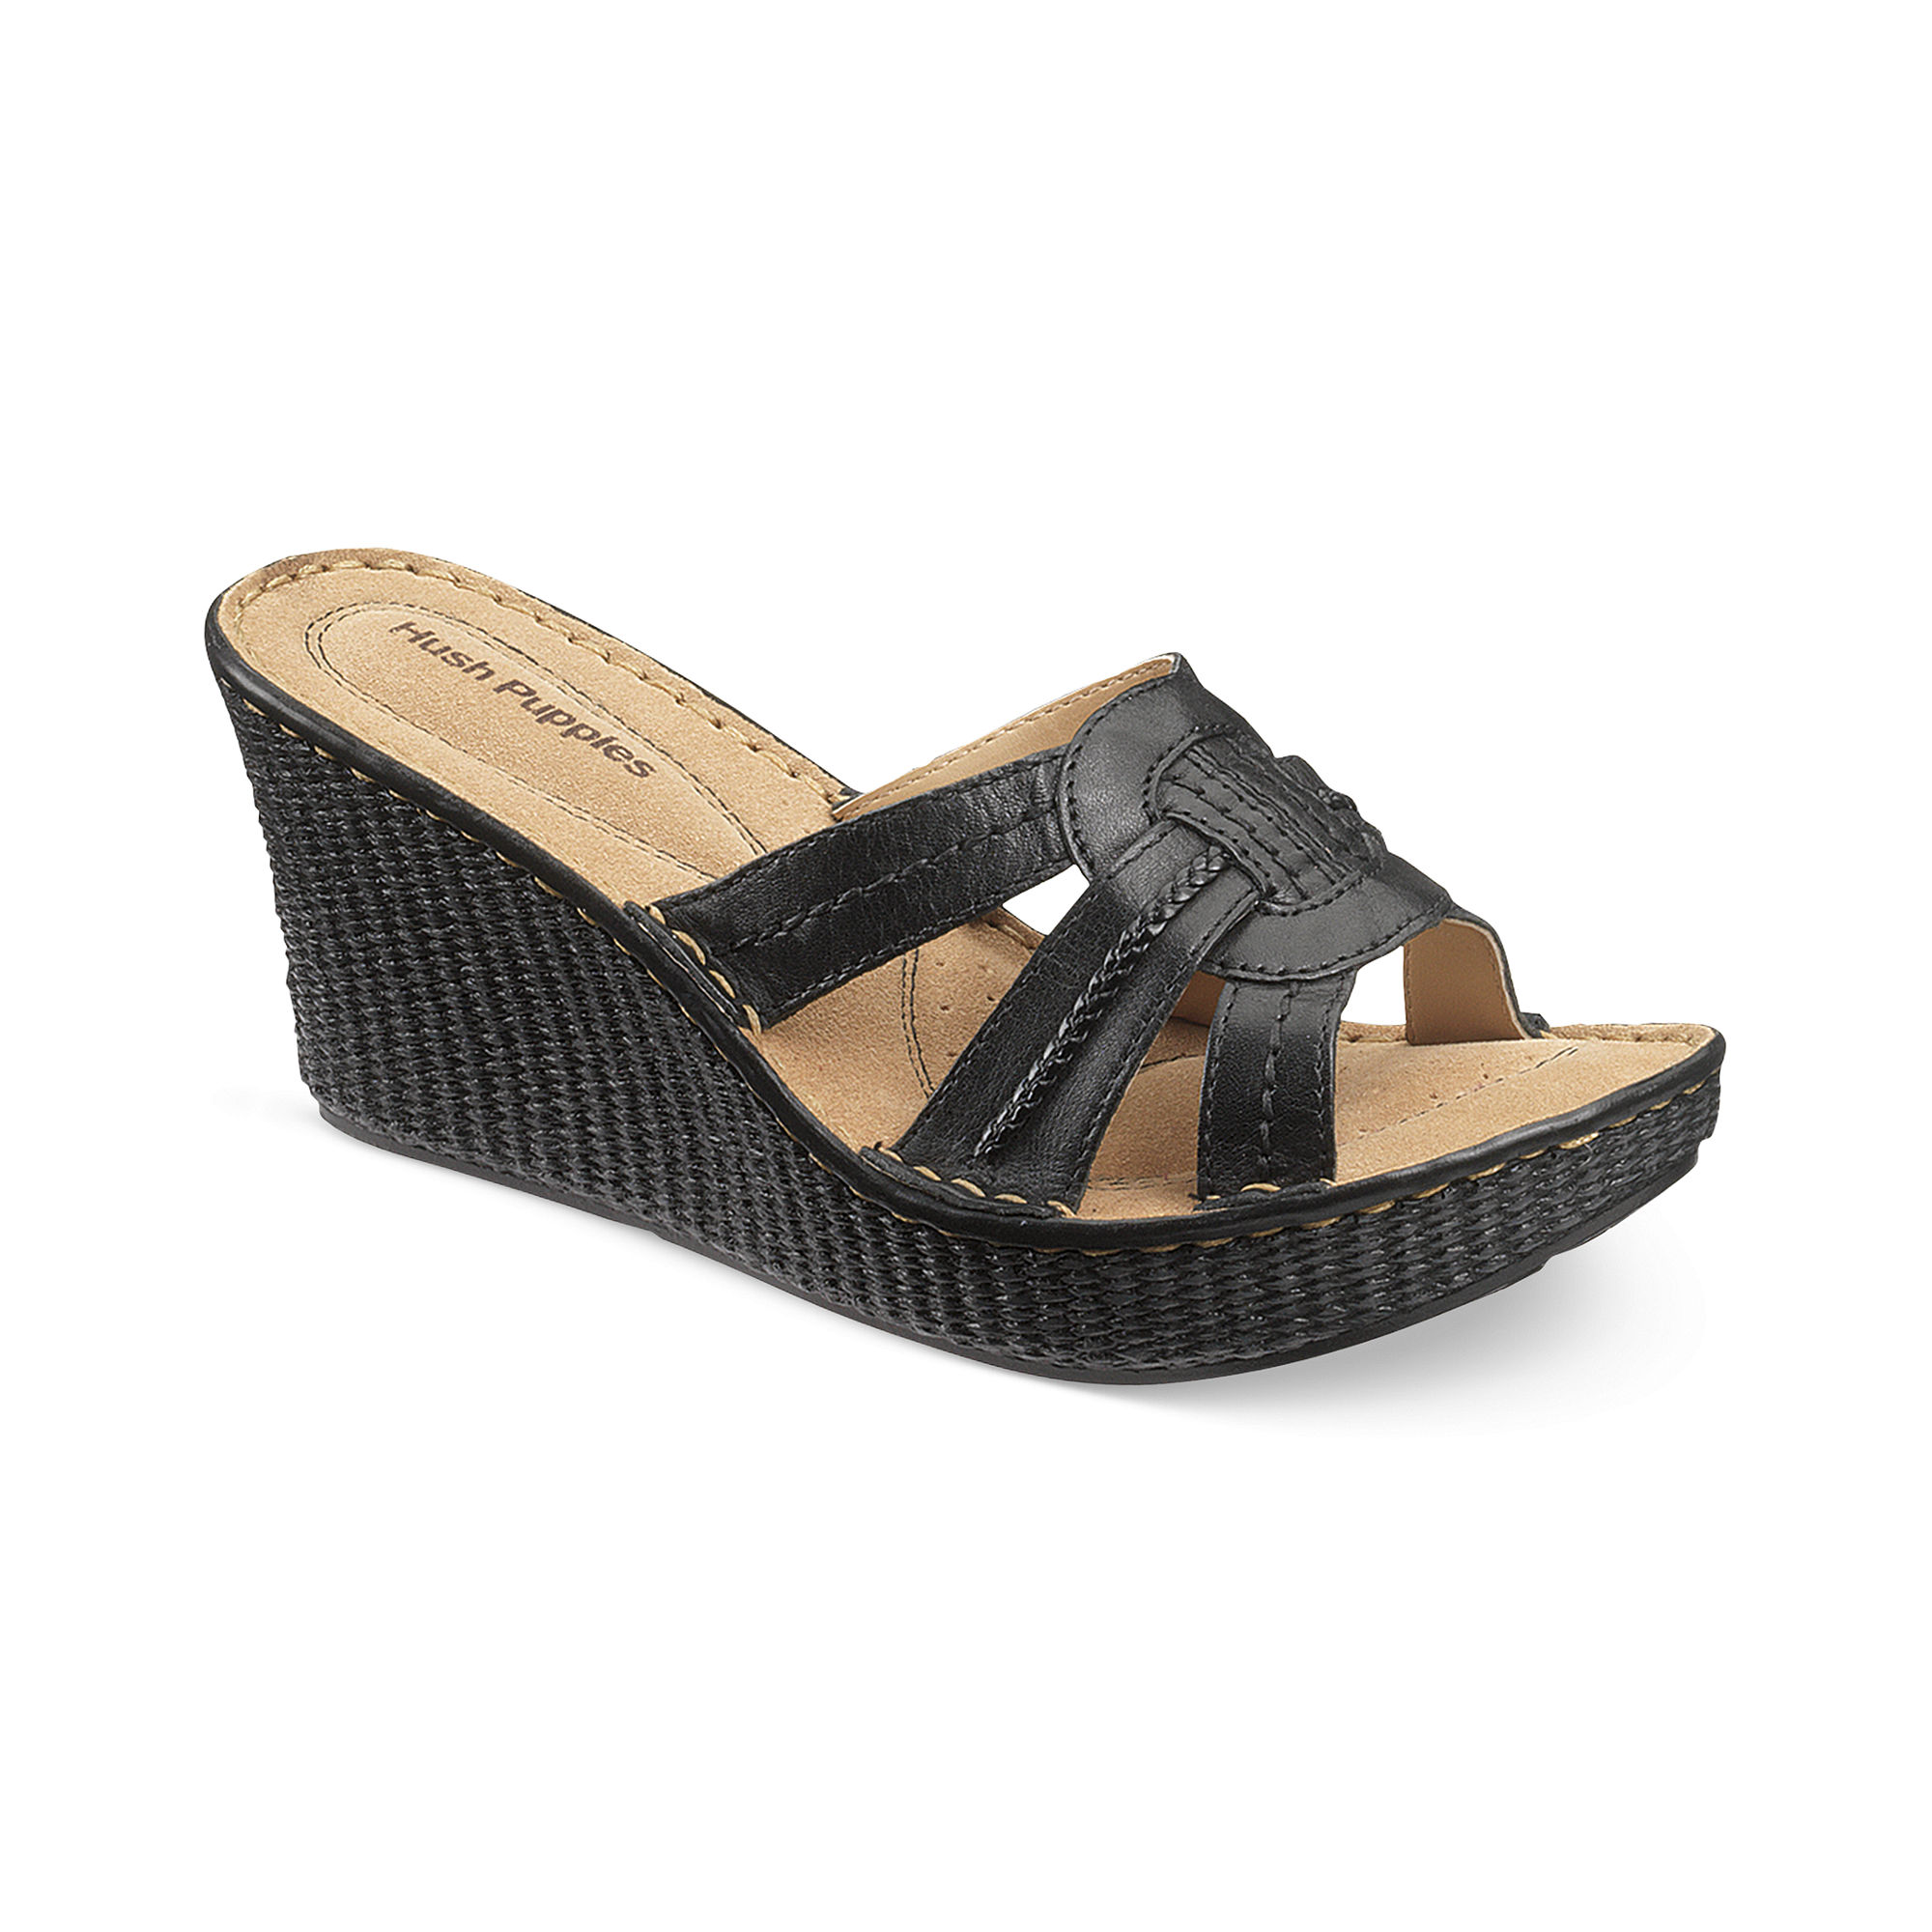 Hush Puppies Shoes For Women